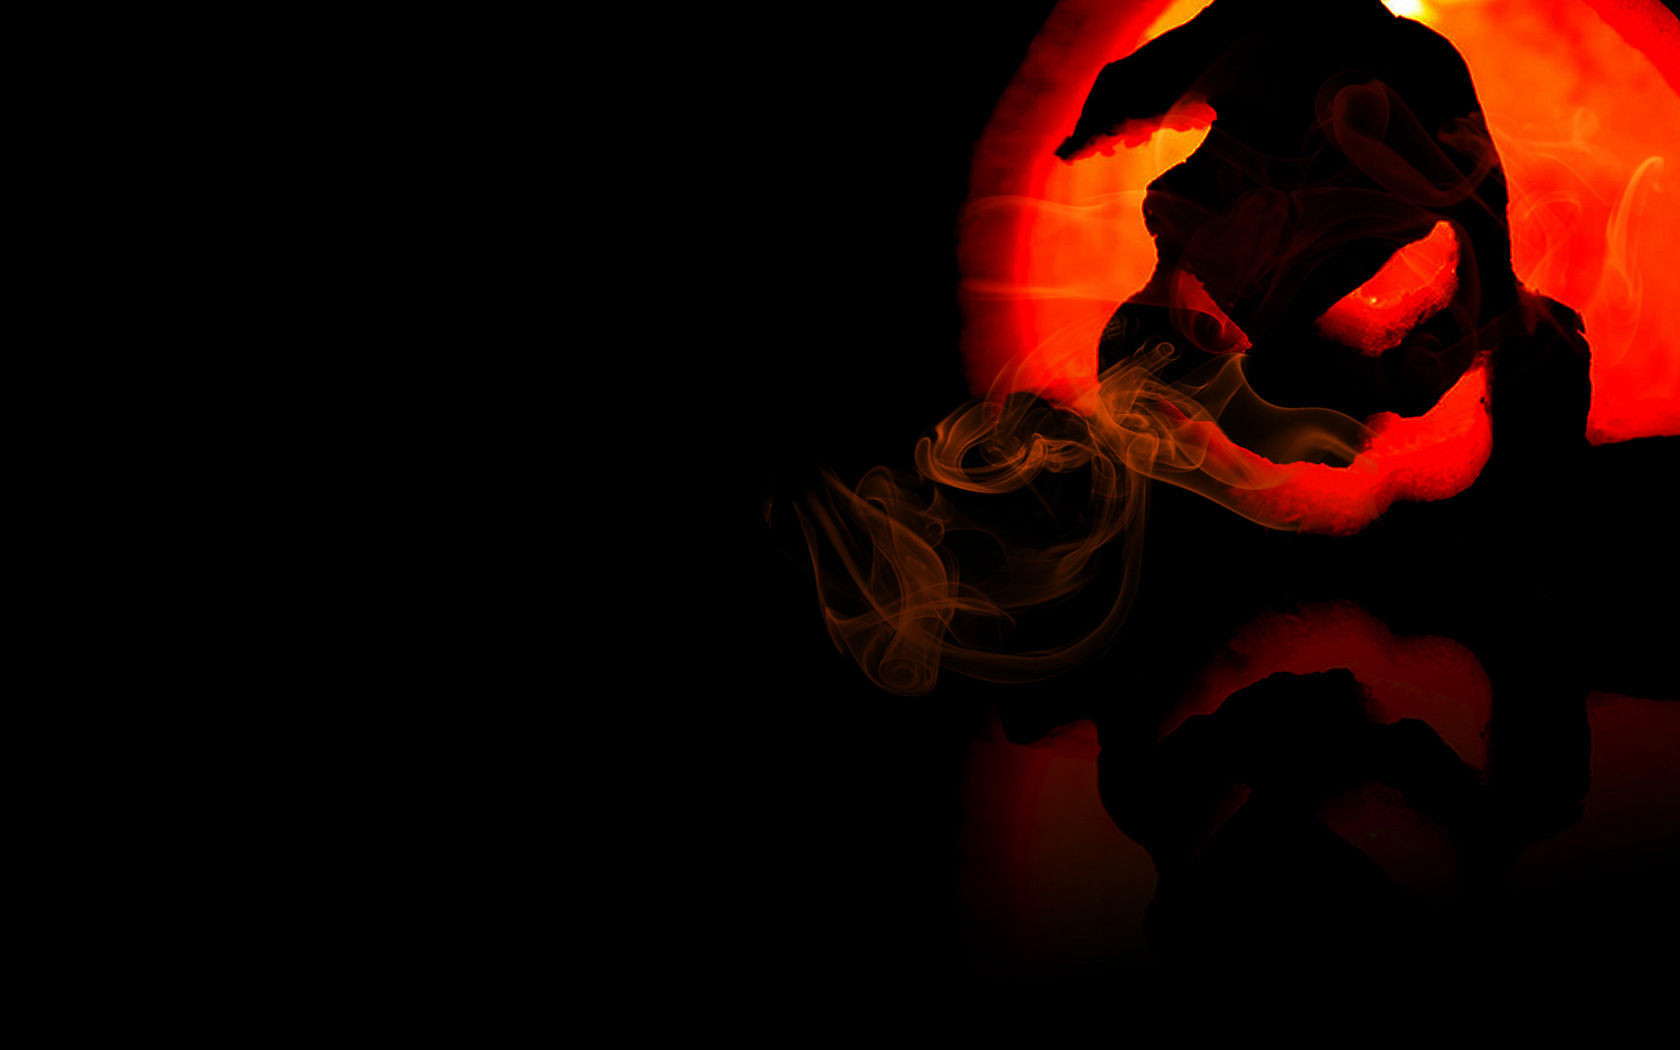 Scary Halloween Computer Wallpaper 64889 1680x1050px 1680x1050